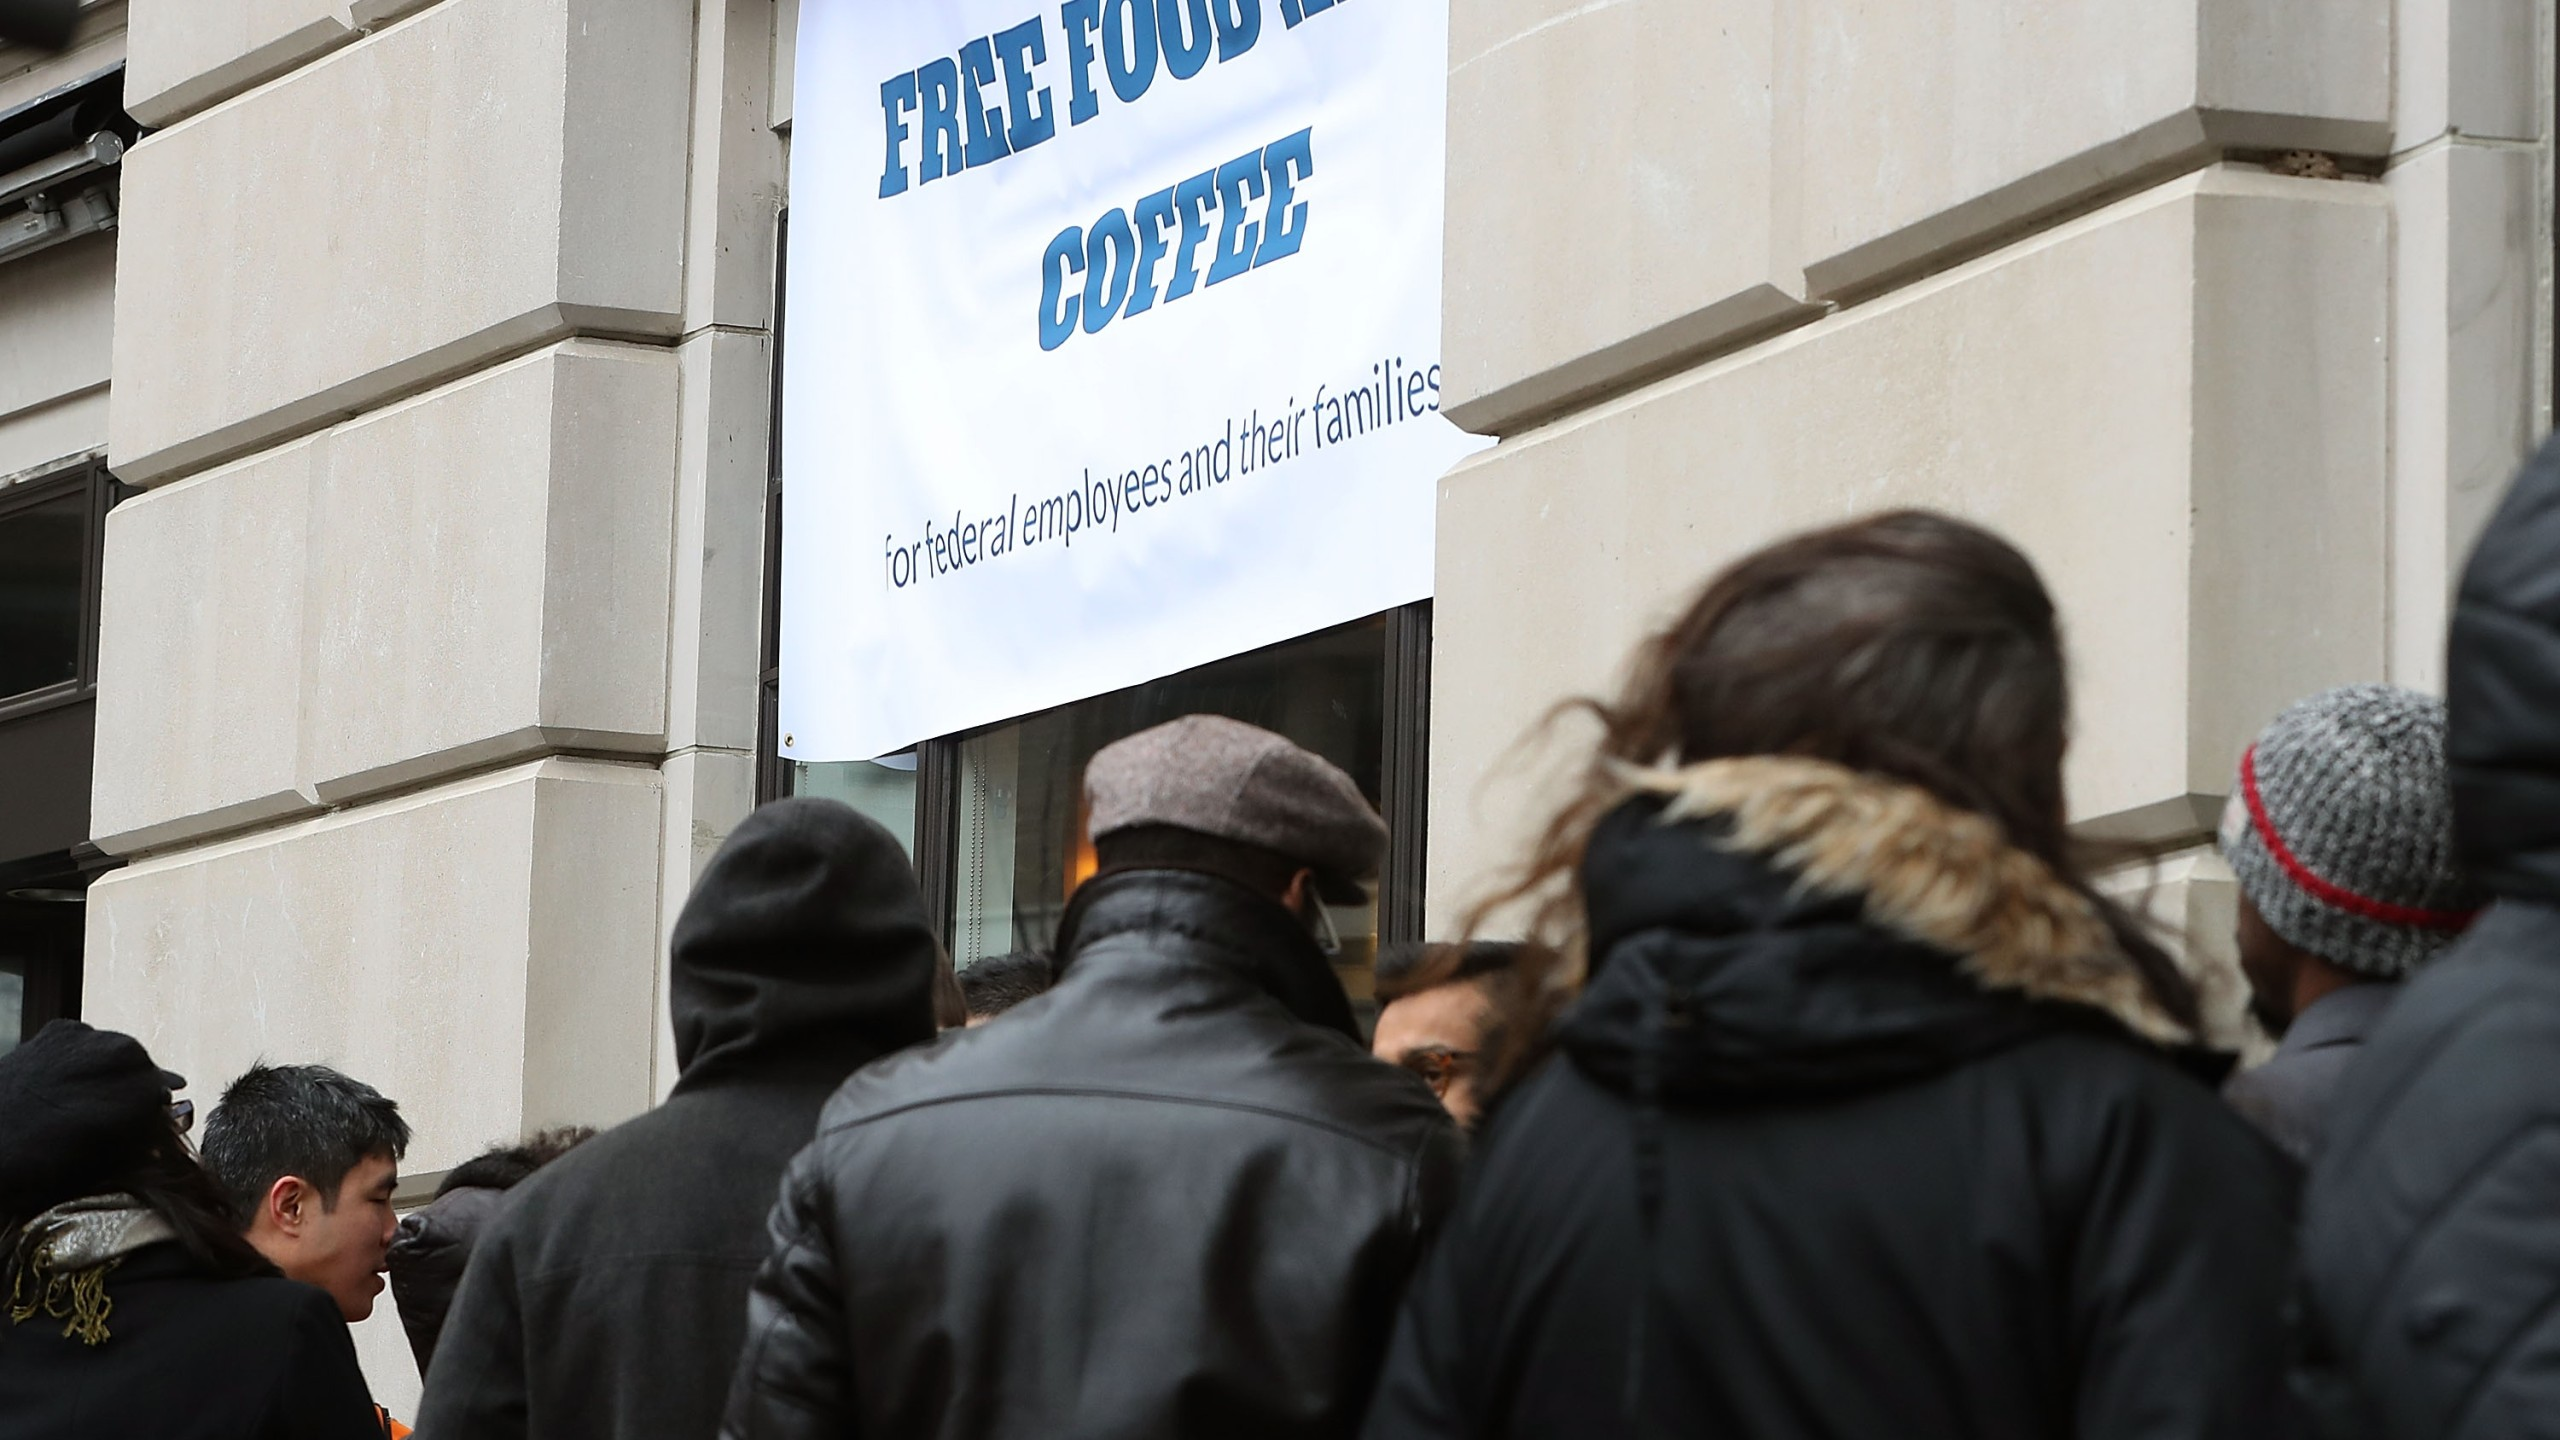 People line up to get a free lunch at a pop-up eatery hosted by Celebrity Chef Jose Andres for furloughed government employees and their families, on Jan. 16, 2019, in Washington D.C. (Credit: Mark Wilson / Getty Images)